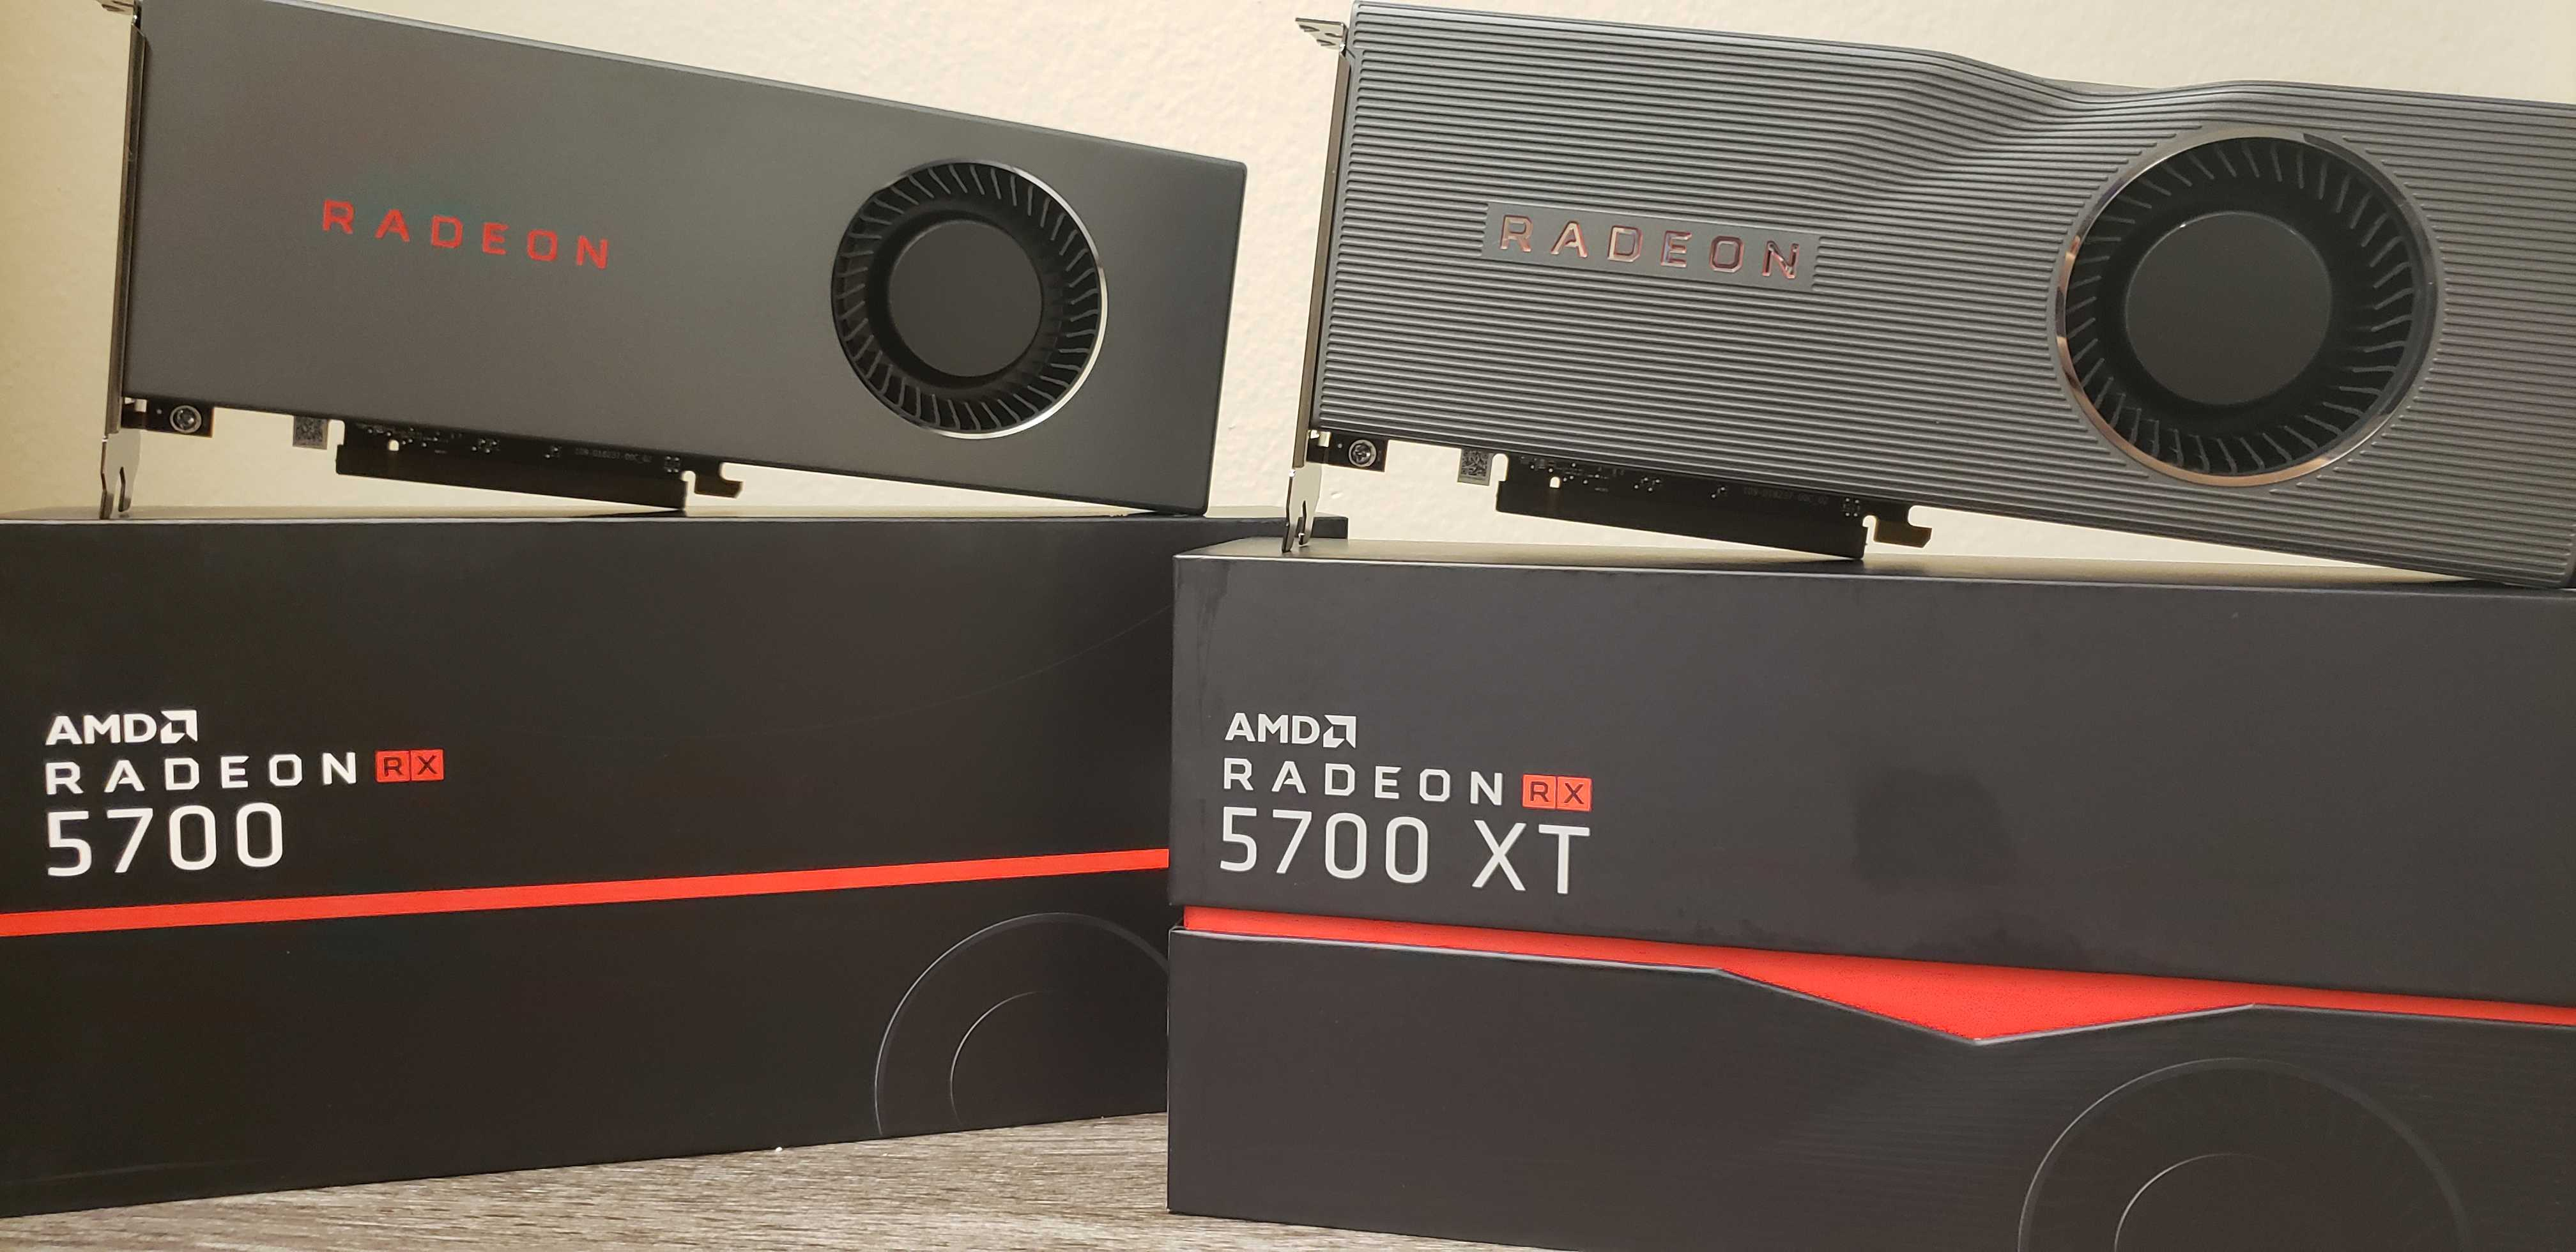 Revisiting AMD's 19 7 1 drivers and the RX 5700 launch | PC